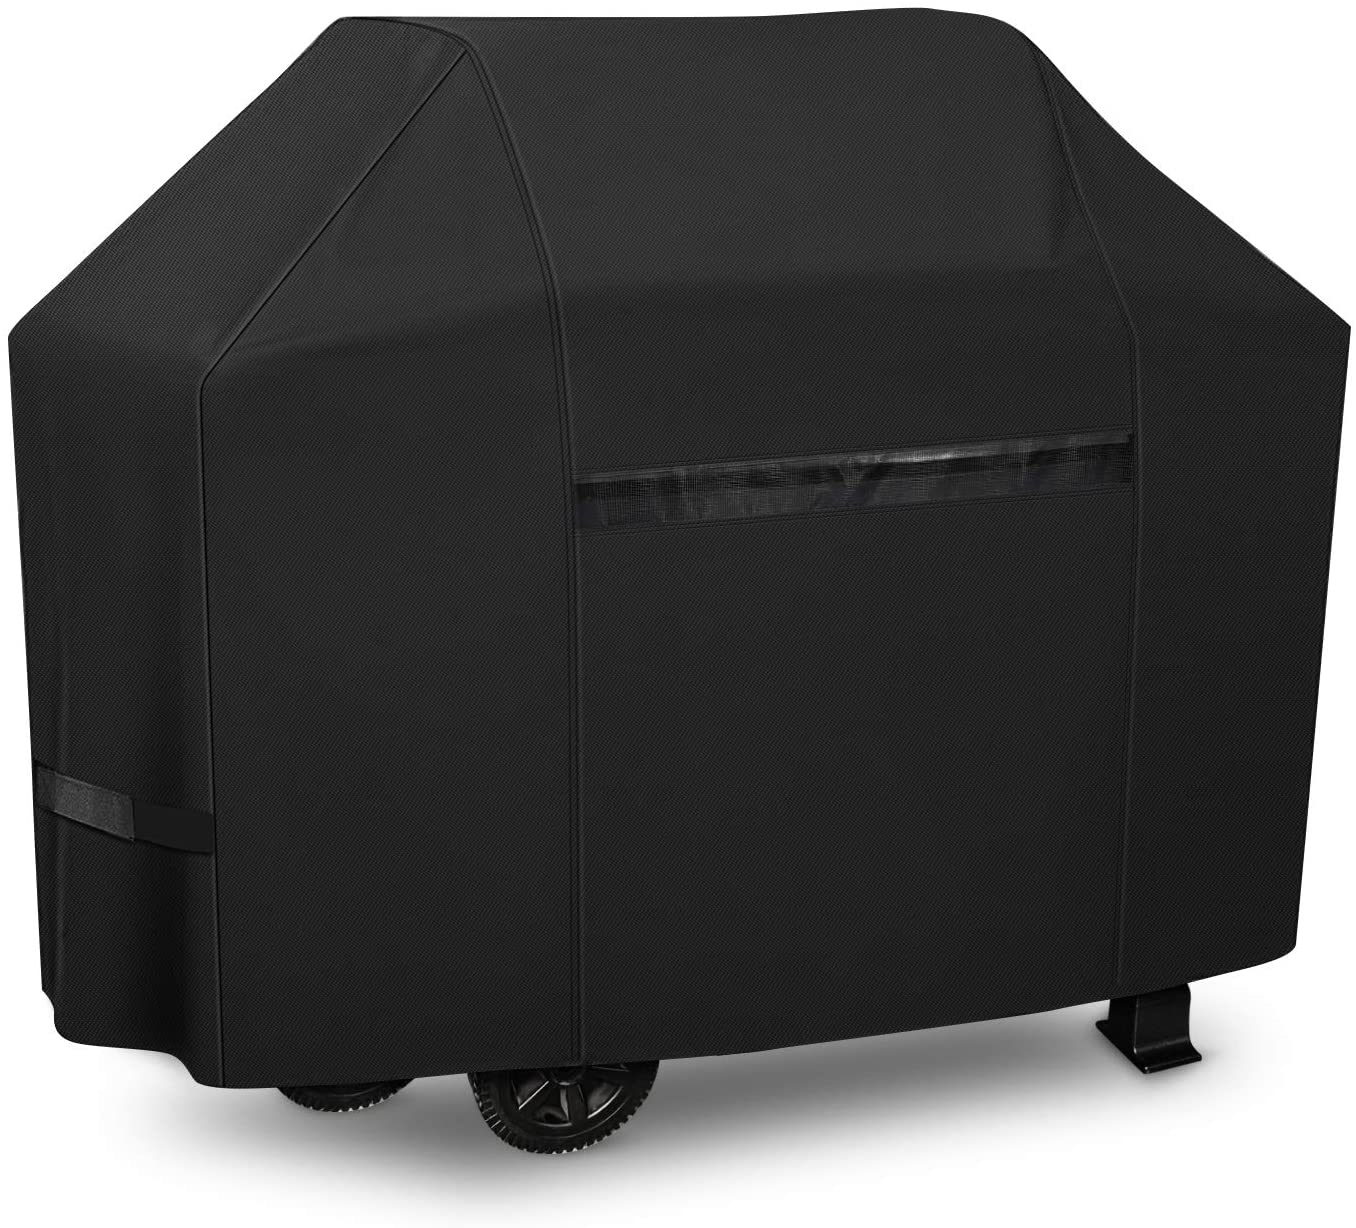 iCOVER Grill Covers 60 inch Gas Barbeque Grill Cover, 600D Heavy Duty Waterproof Canvas, UV Resistant & No Fading, for Weber Char Broil Holland Jenn Air Brinkmann